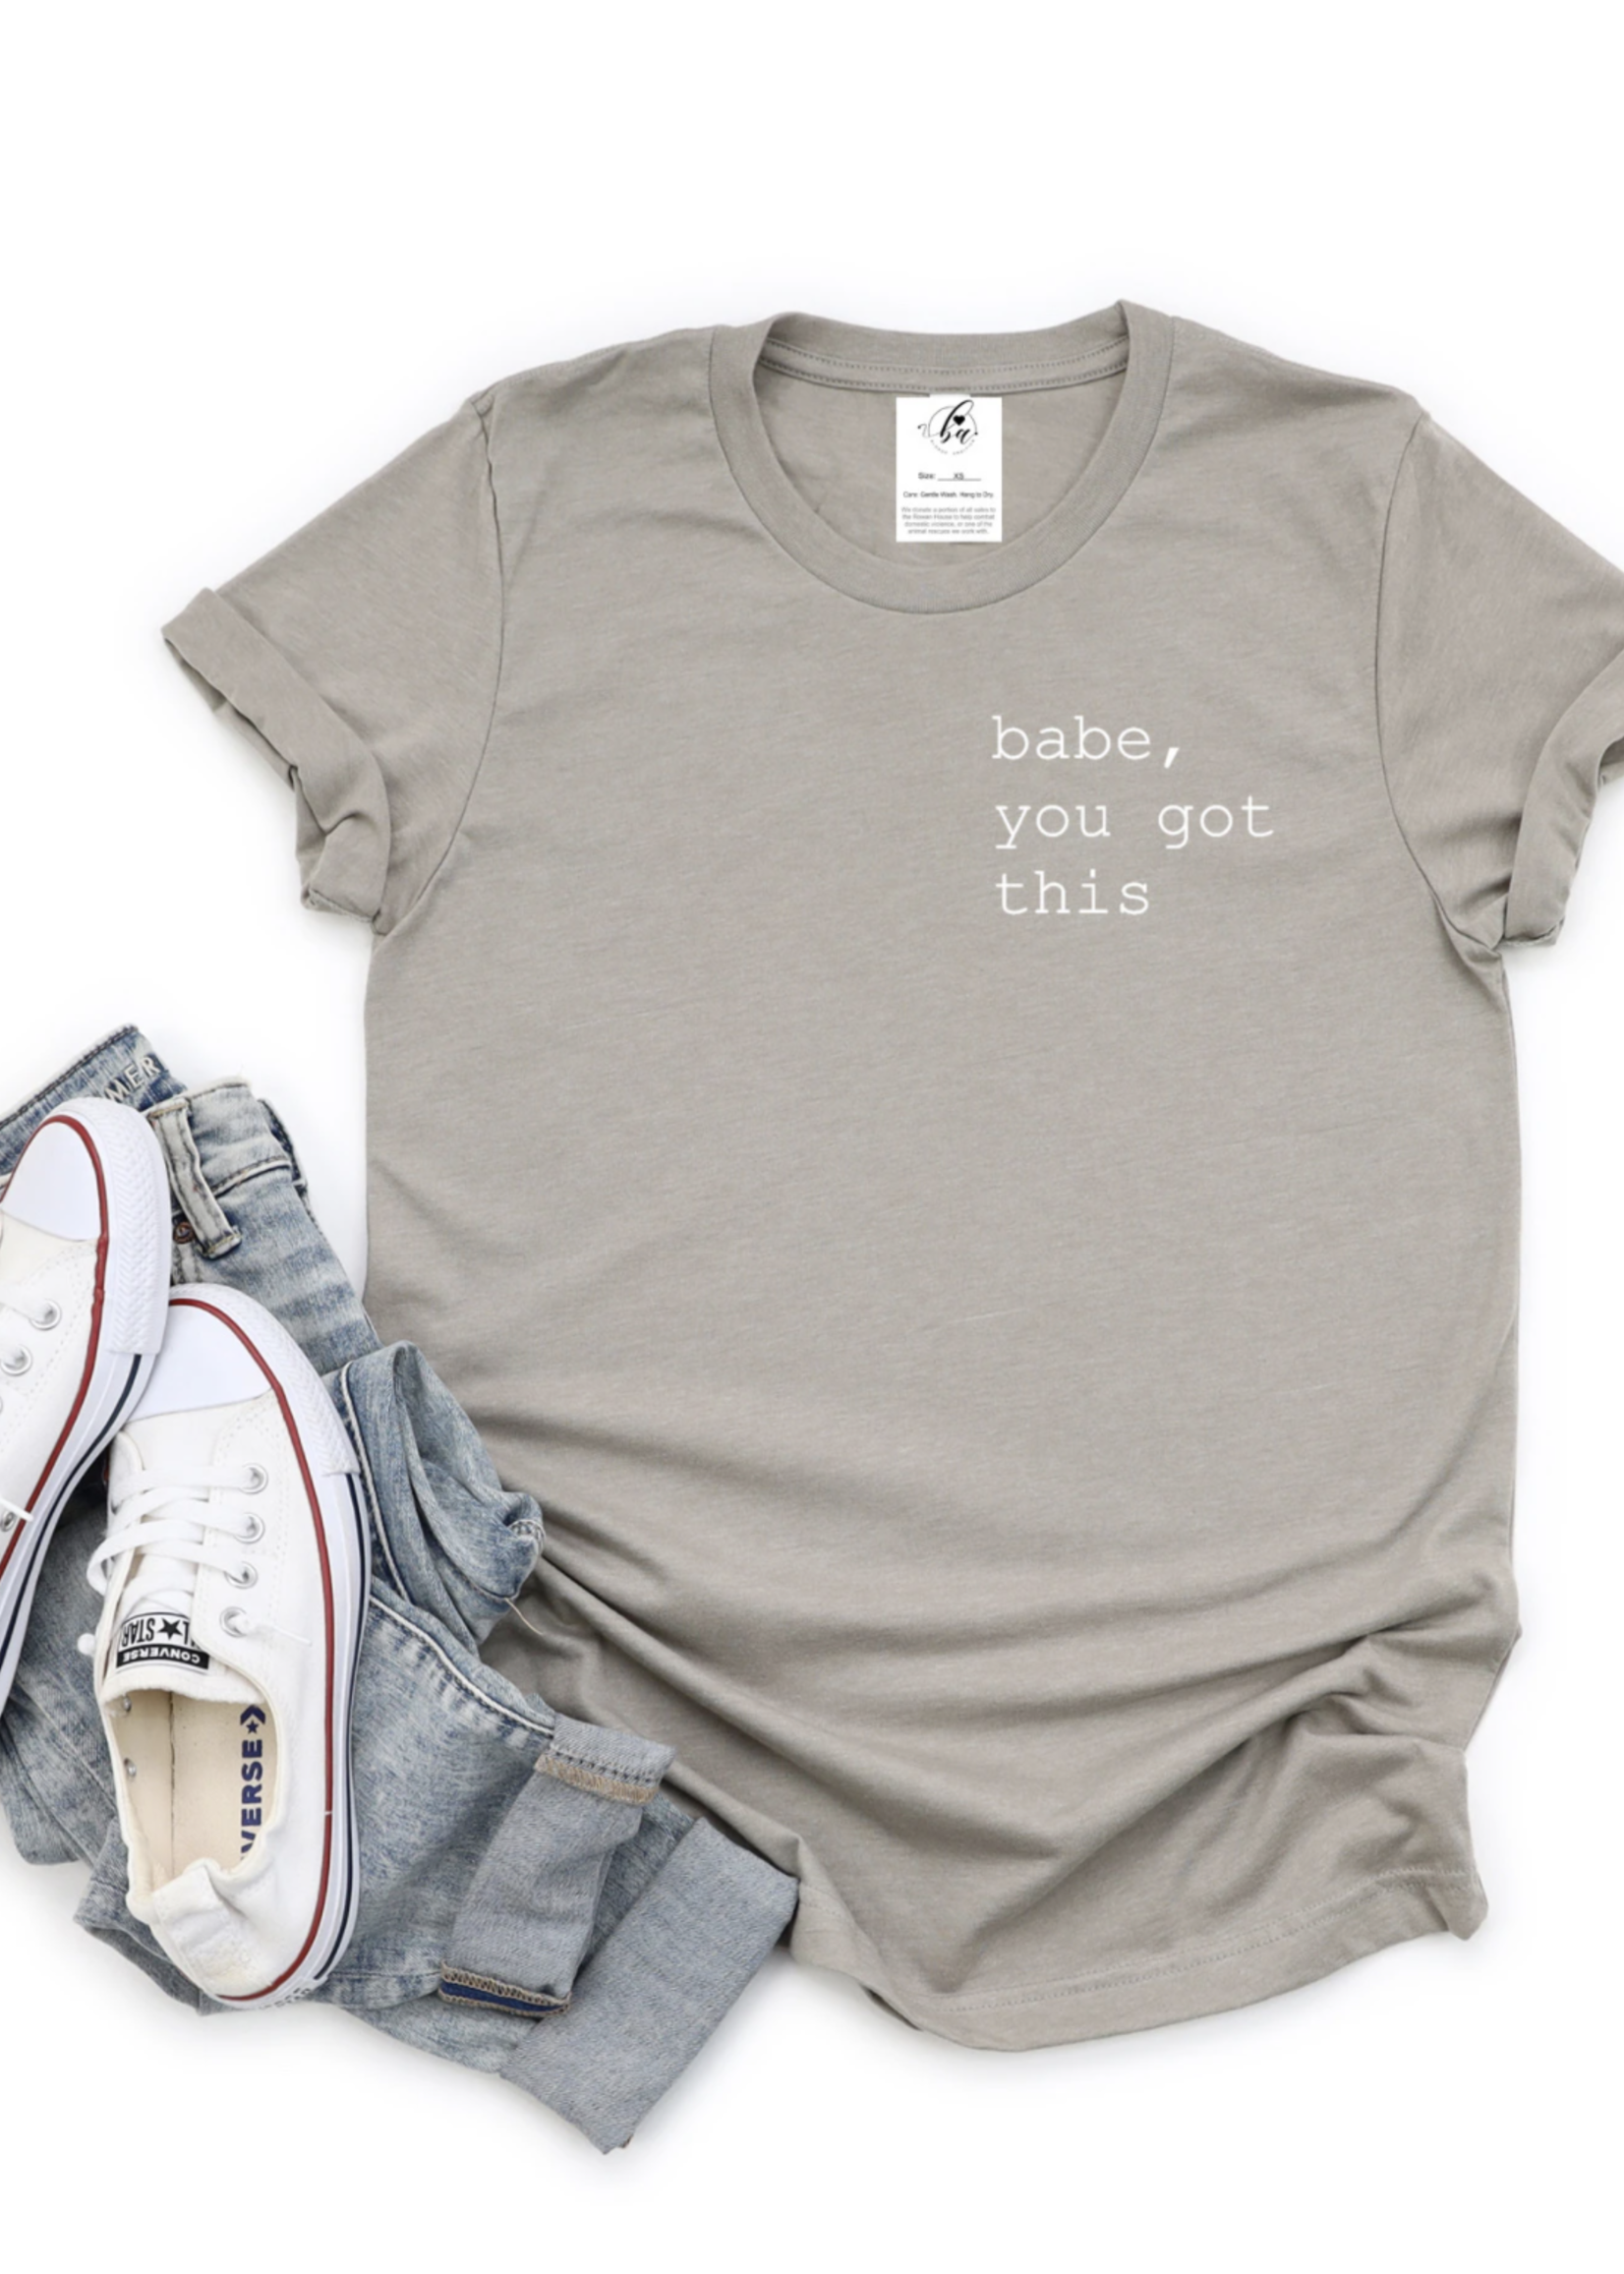 Blonde Ambition Babe, You Got This T-Shirt